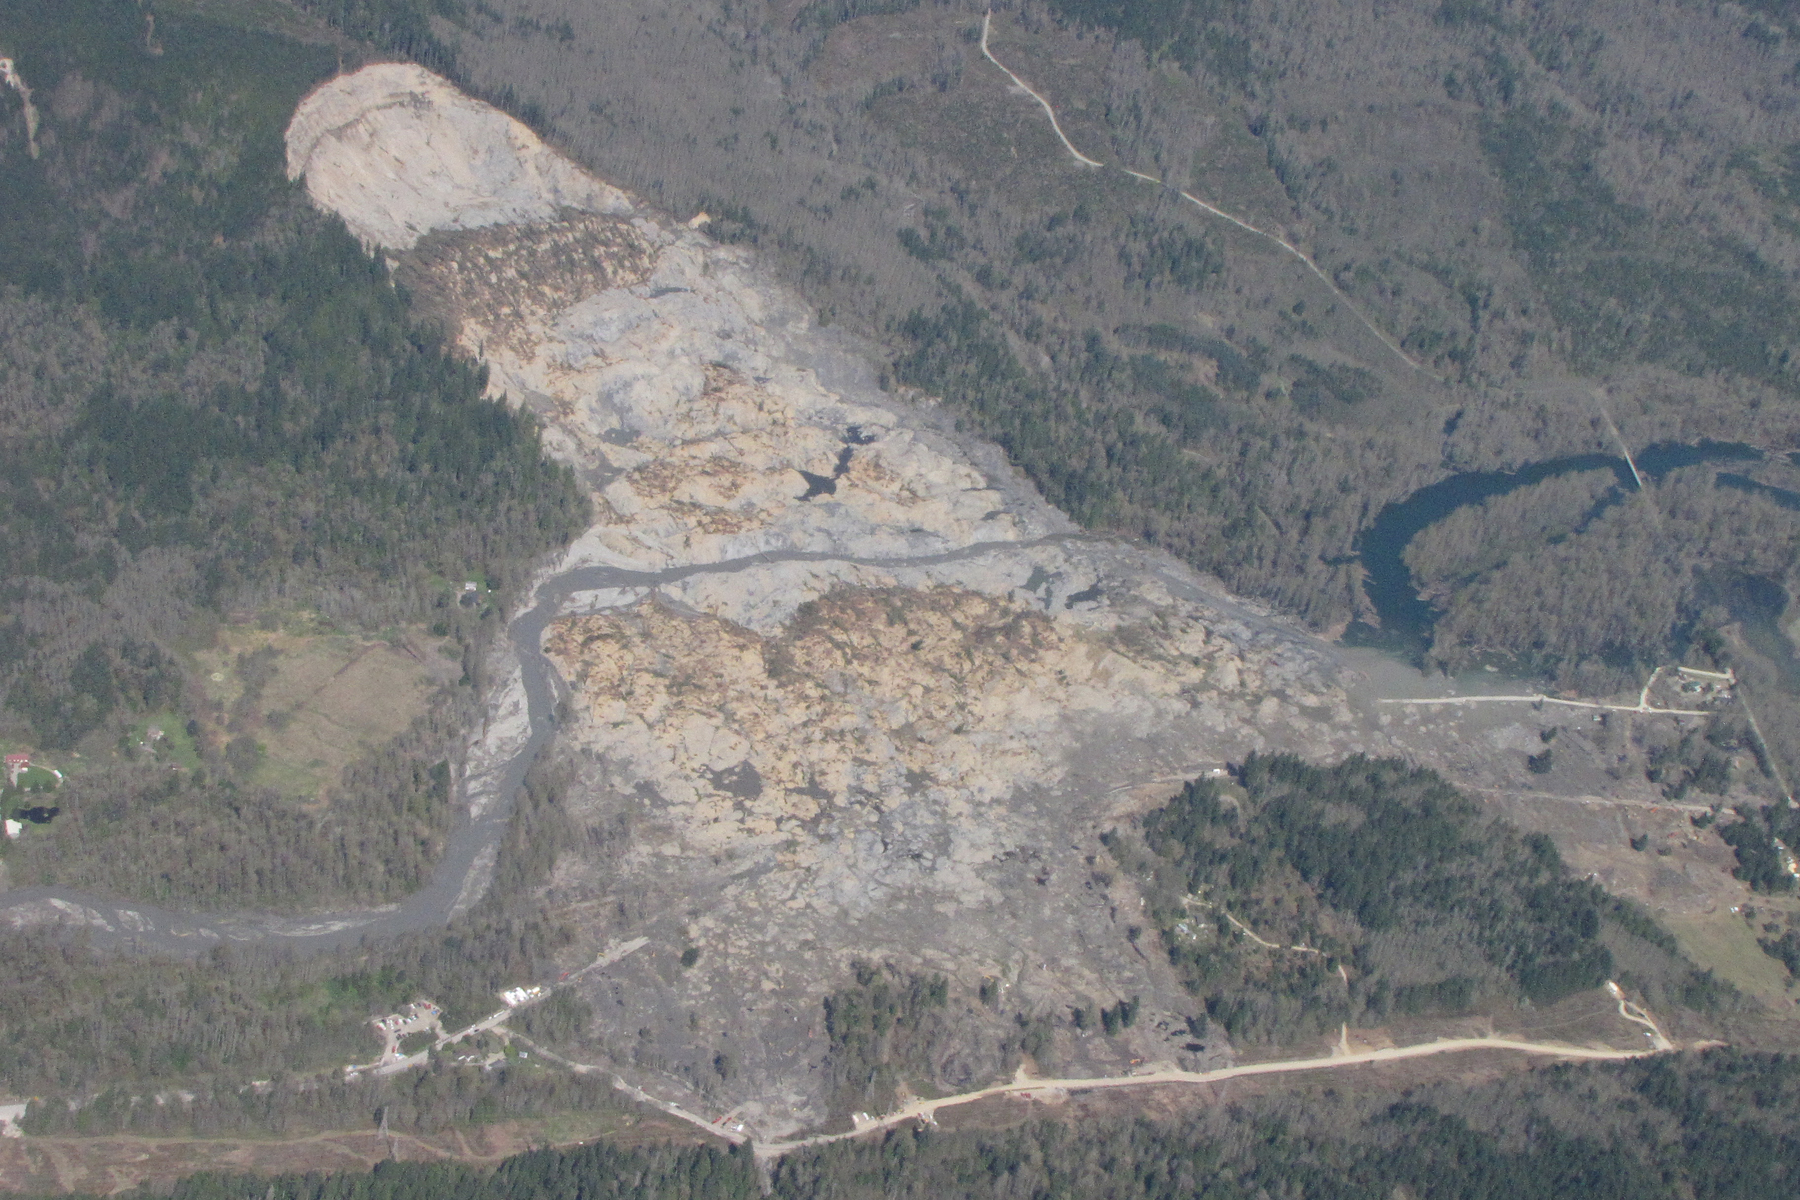 Aerial image of the Oso landslide on April 13, 2014.